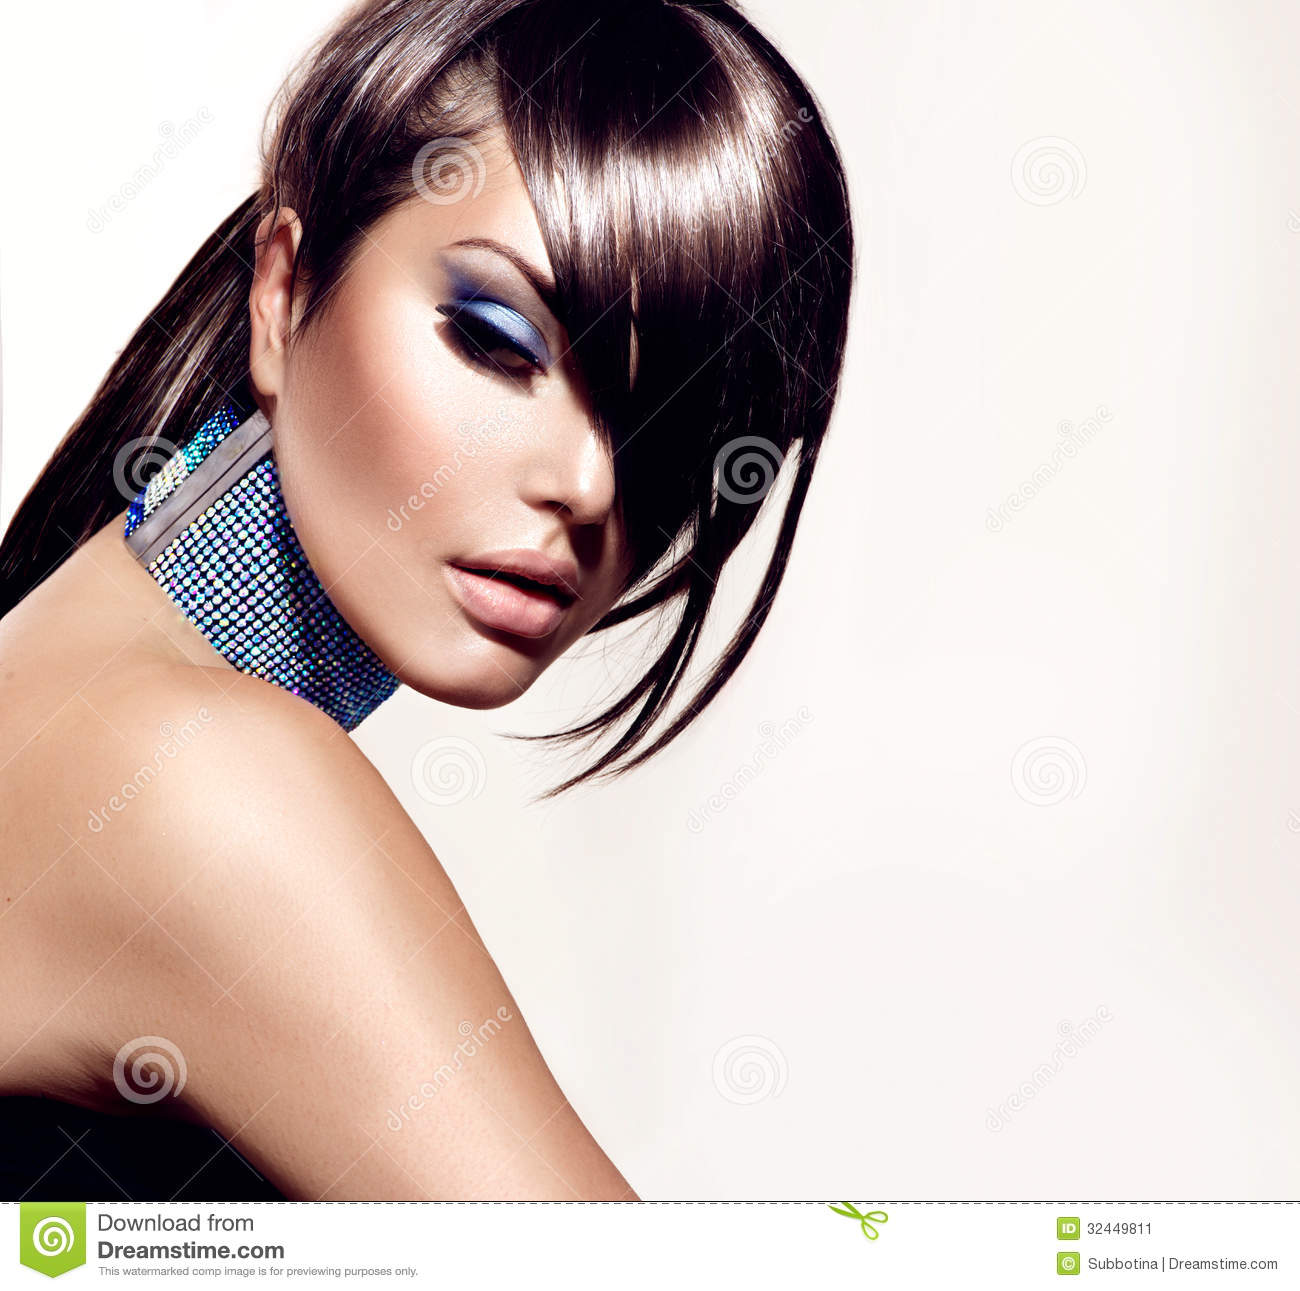 Fashion Beauty Girl Stock Image - Image: 32449811